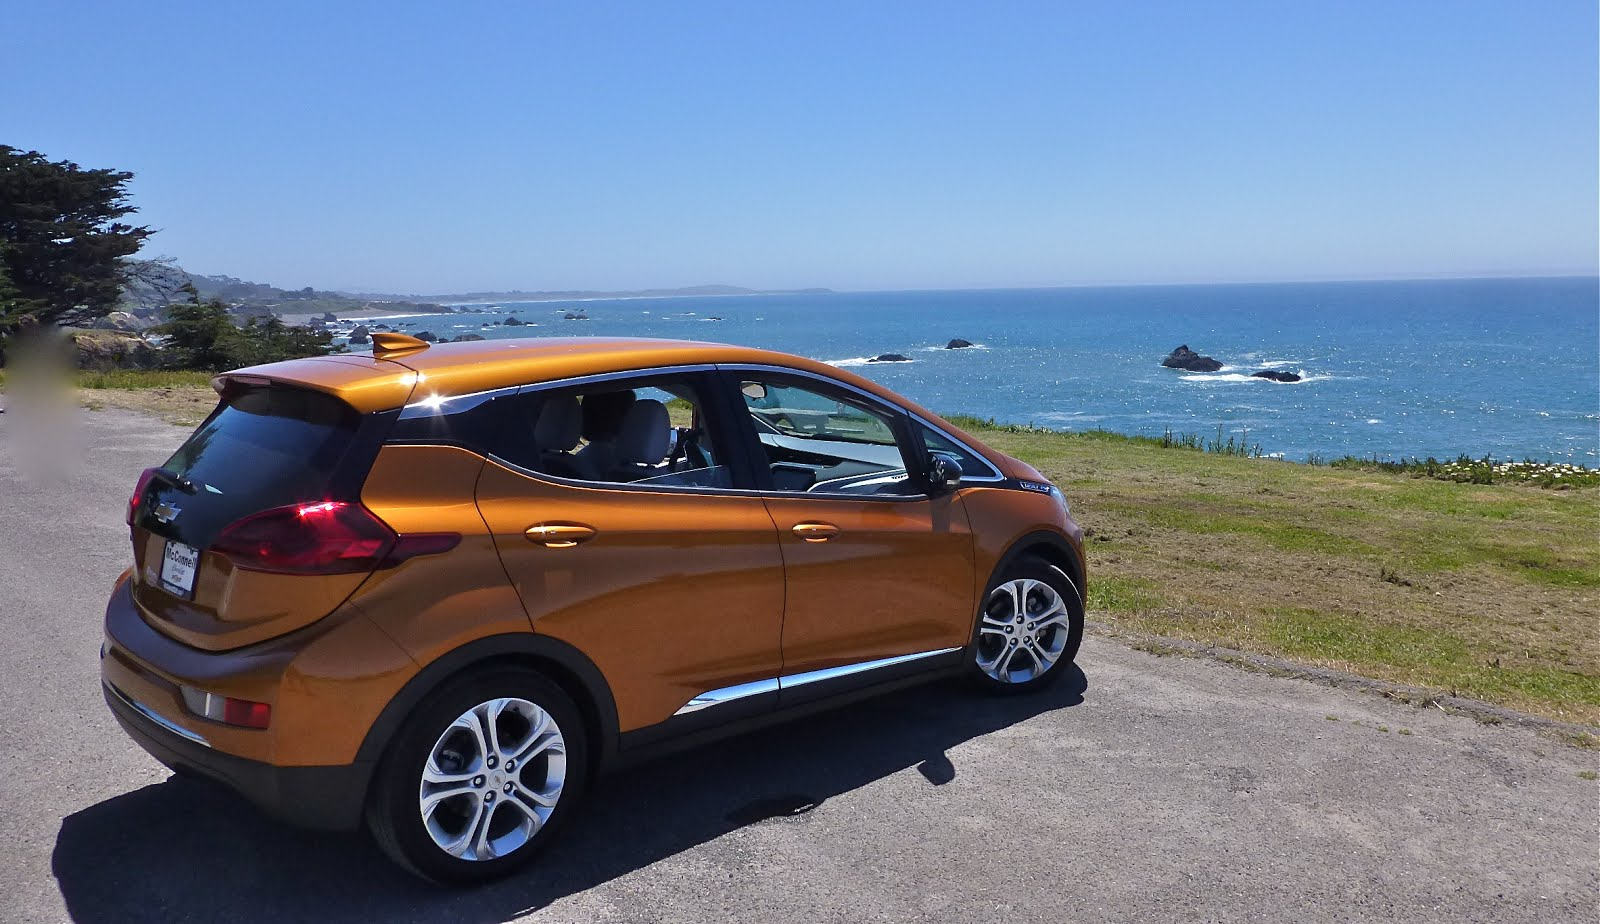 Two Weeks with a Chevrolet Bolt